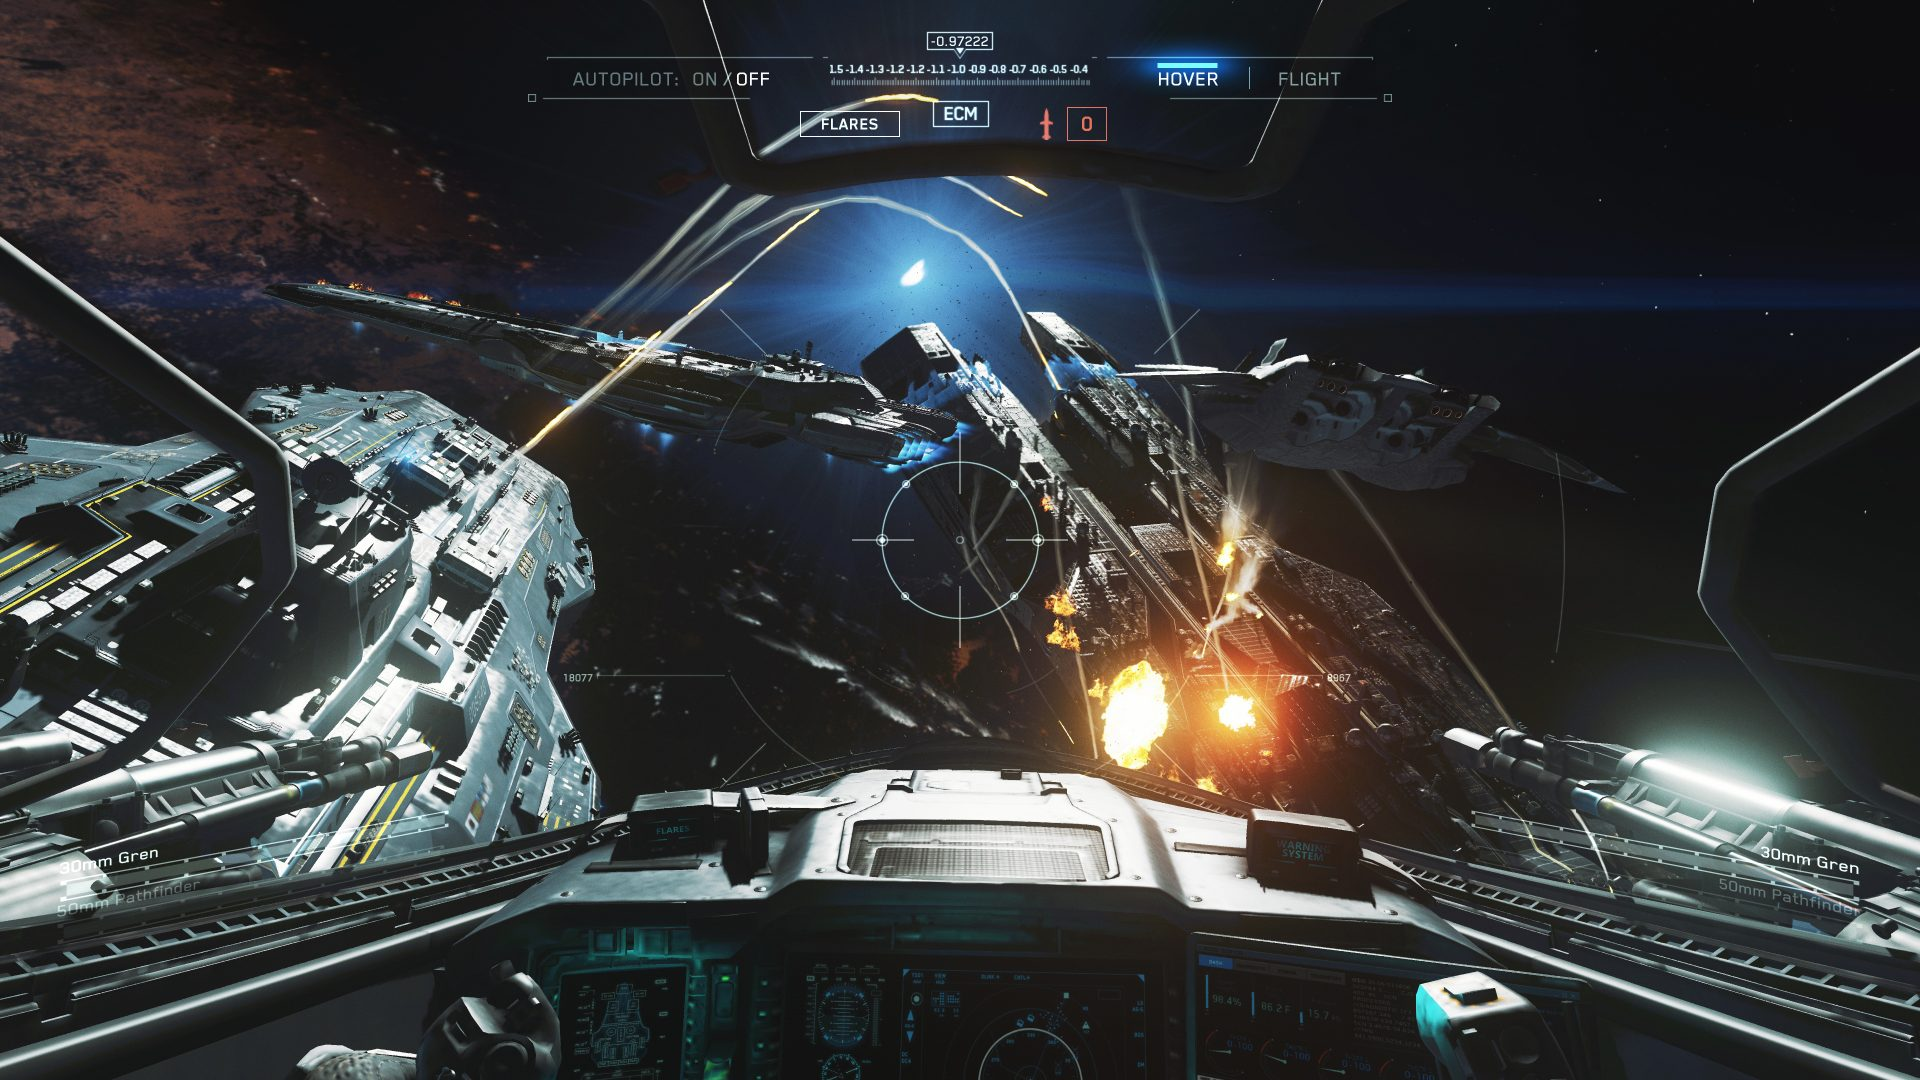 Take The Fight in Zero-G With Call Of Duty Advanced Warfare